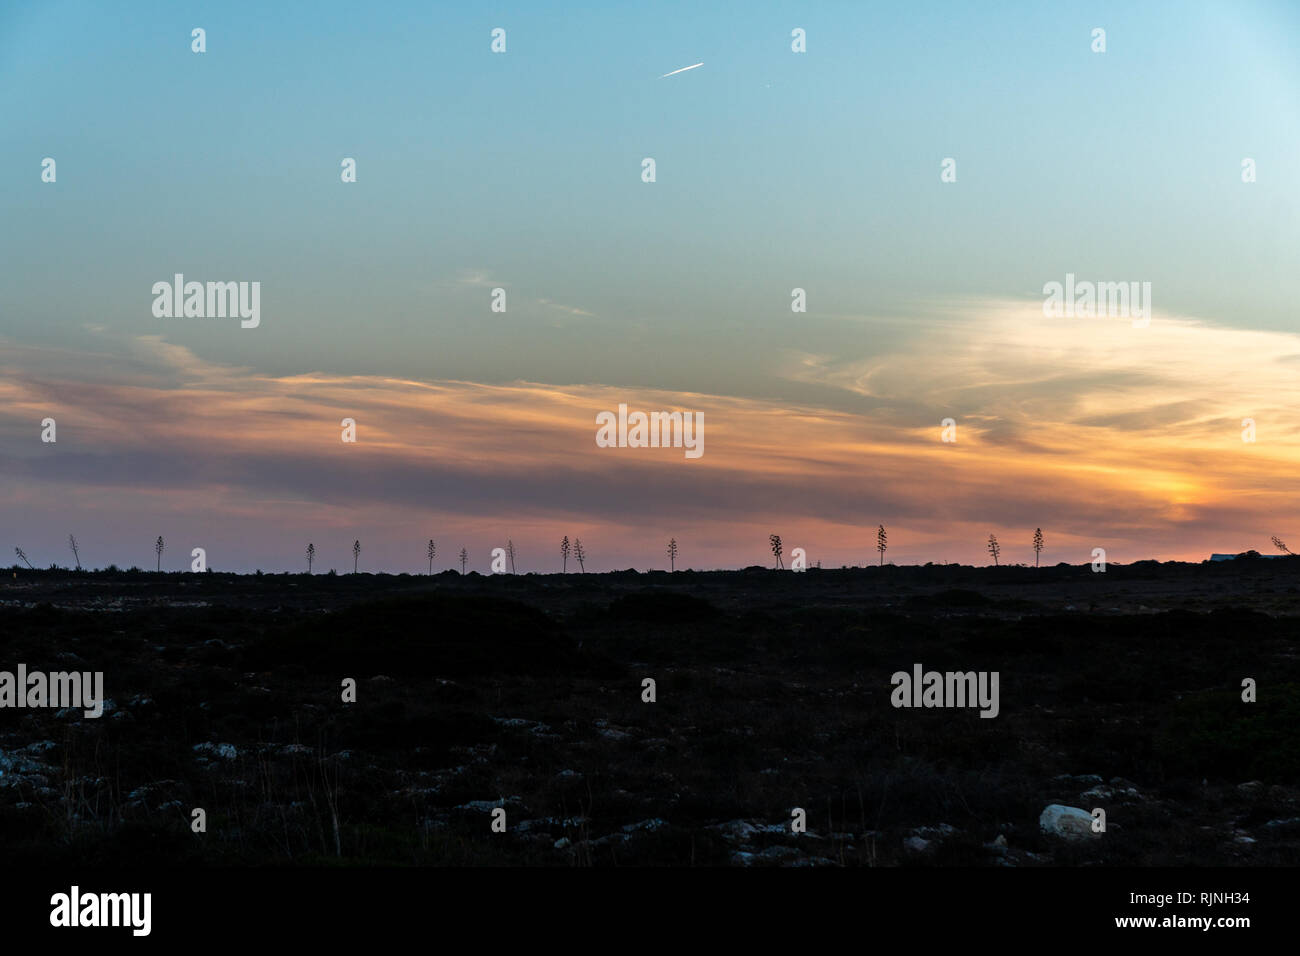 tree silhouete at sunset - Stock Image